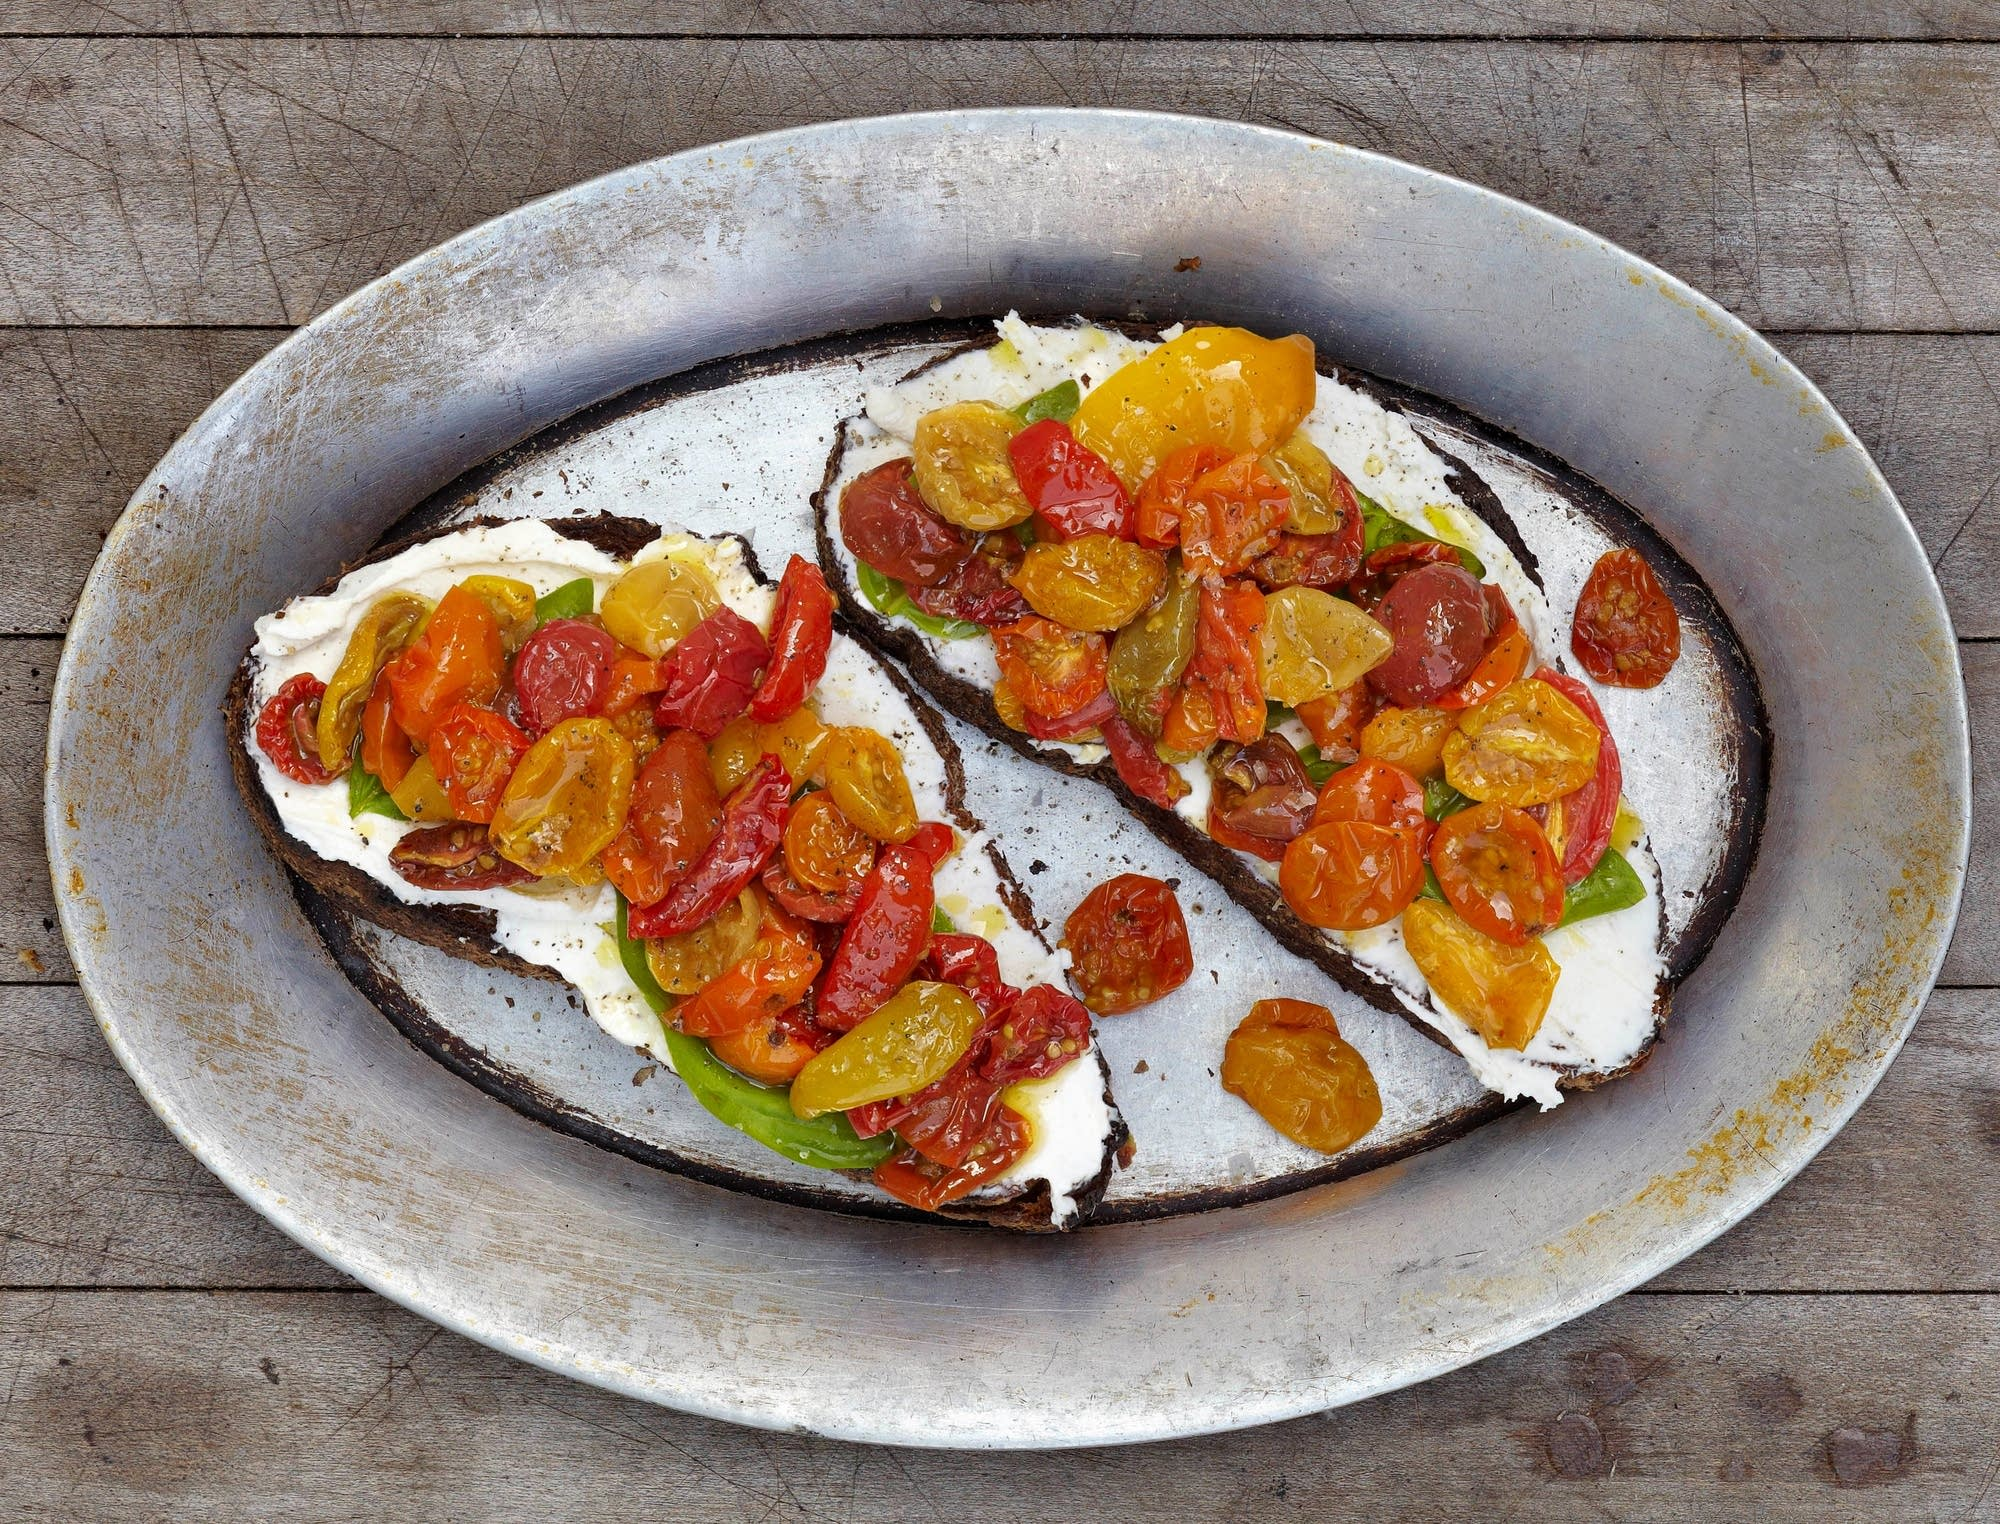 Roasted Cherry Tomatoes With Ricotta The Splendid Table